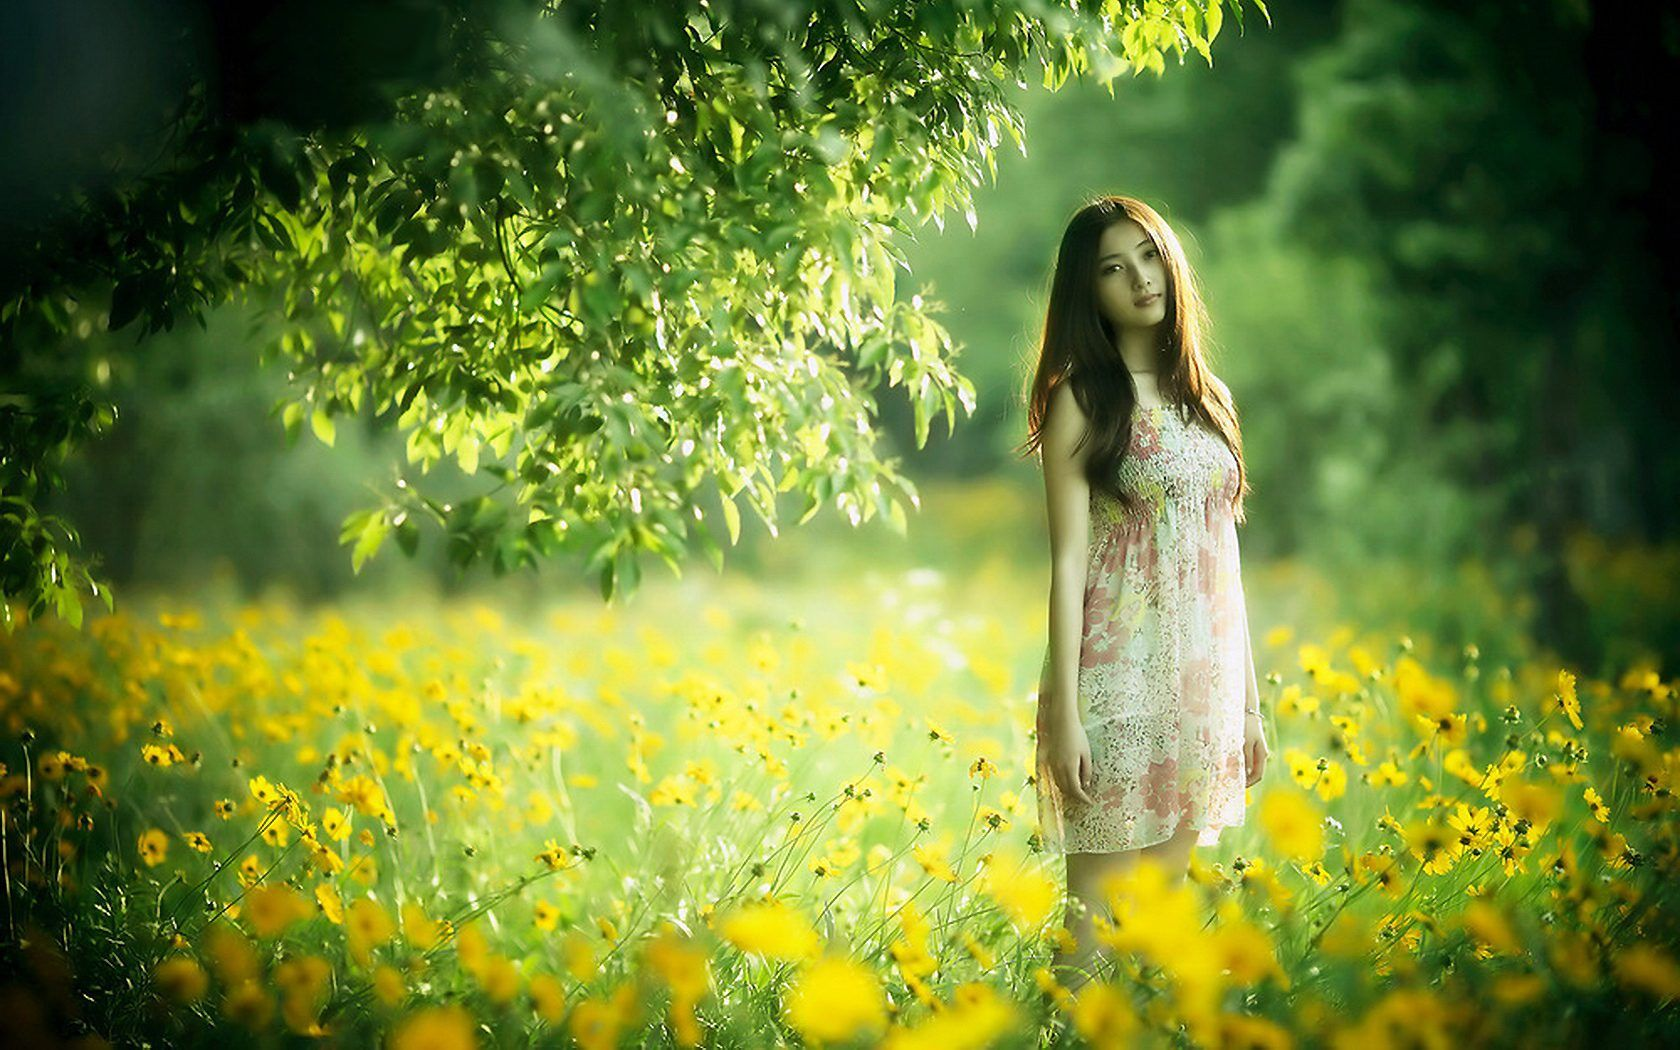 Paul Hayward Bangkok Girl Wallpaper Photography Wallpaper Beautiful Nature